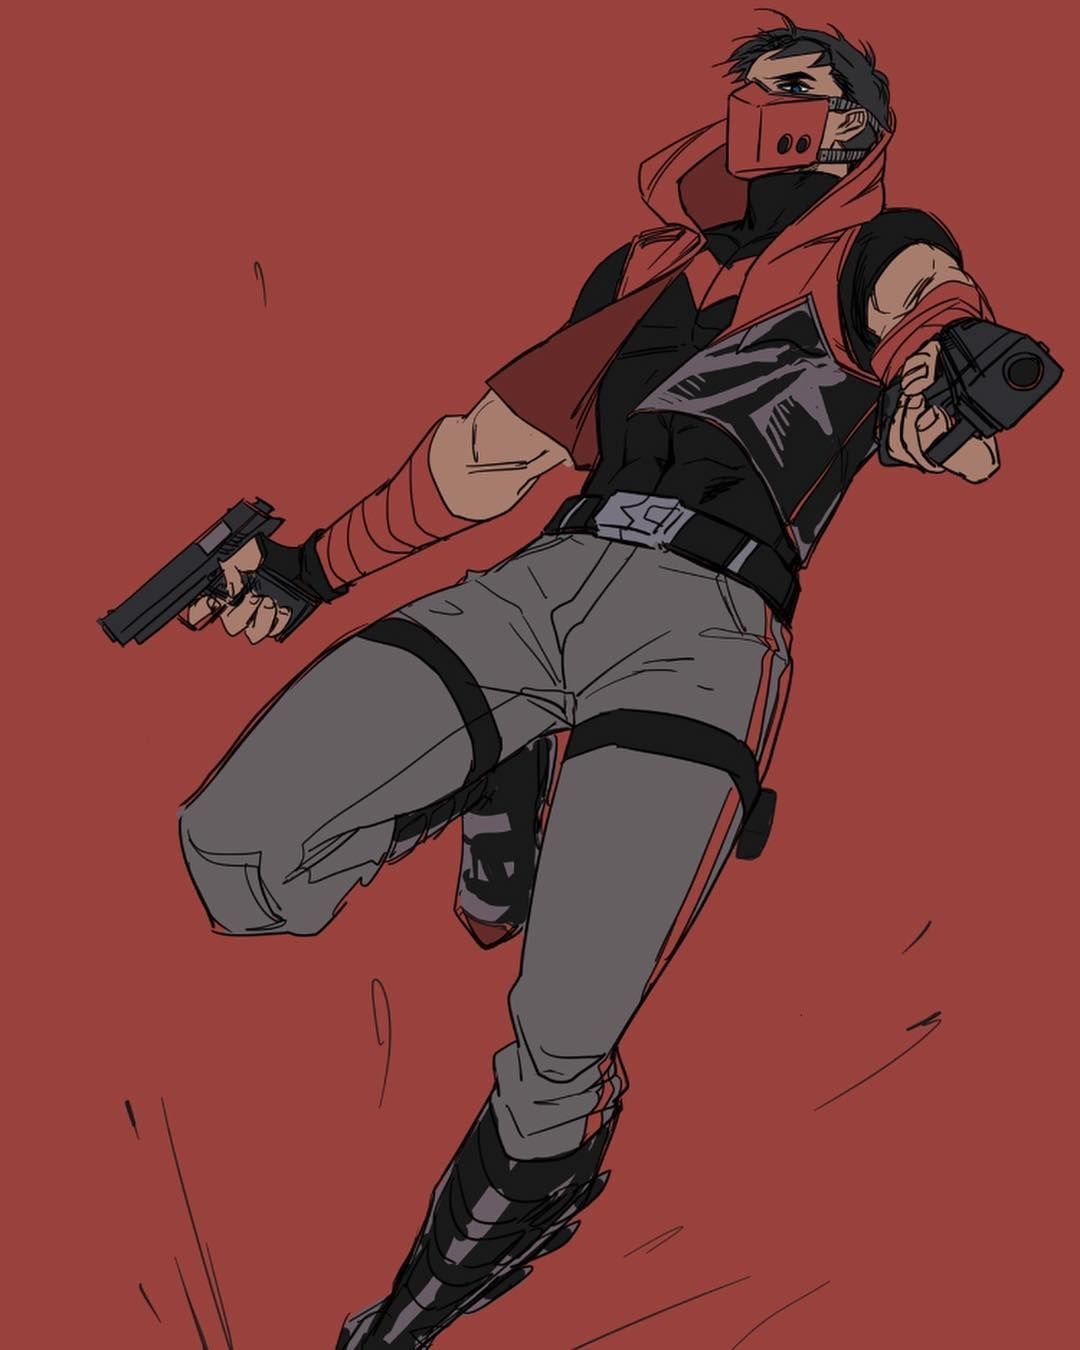 Pin By Caique Rodrigues On Dc Red Hood Red Hood Jason Todd Superhero Art